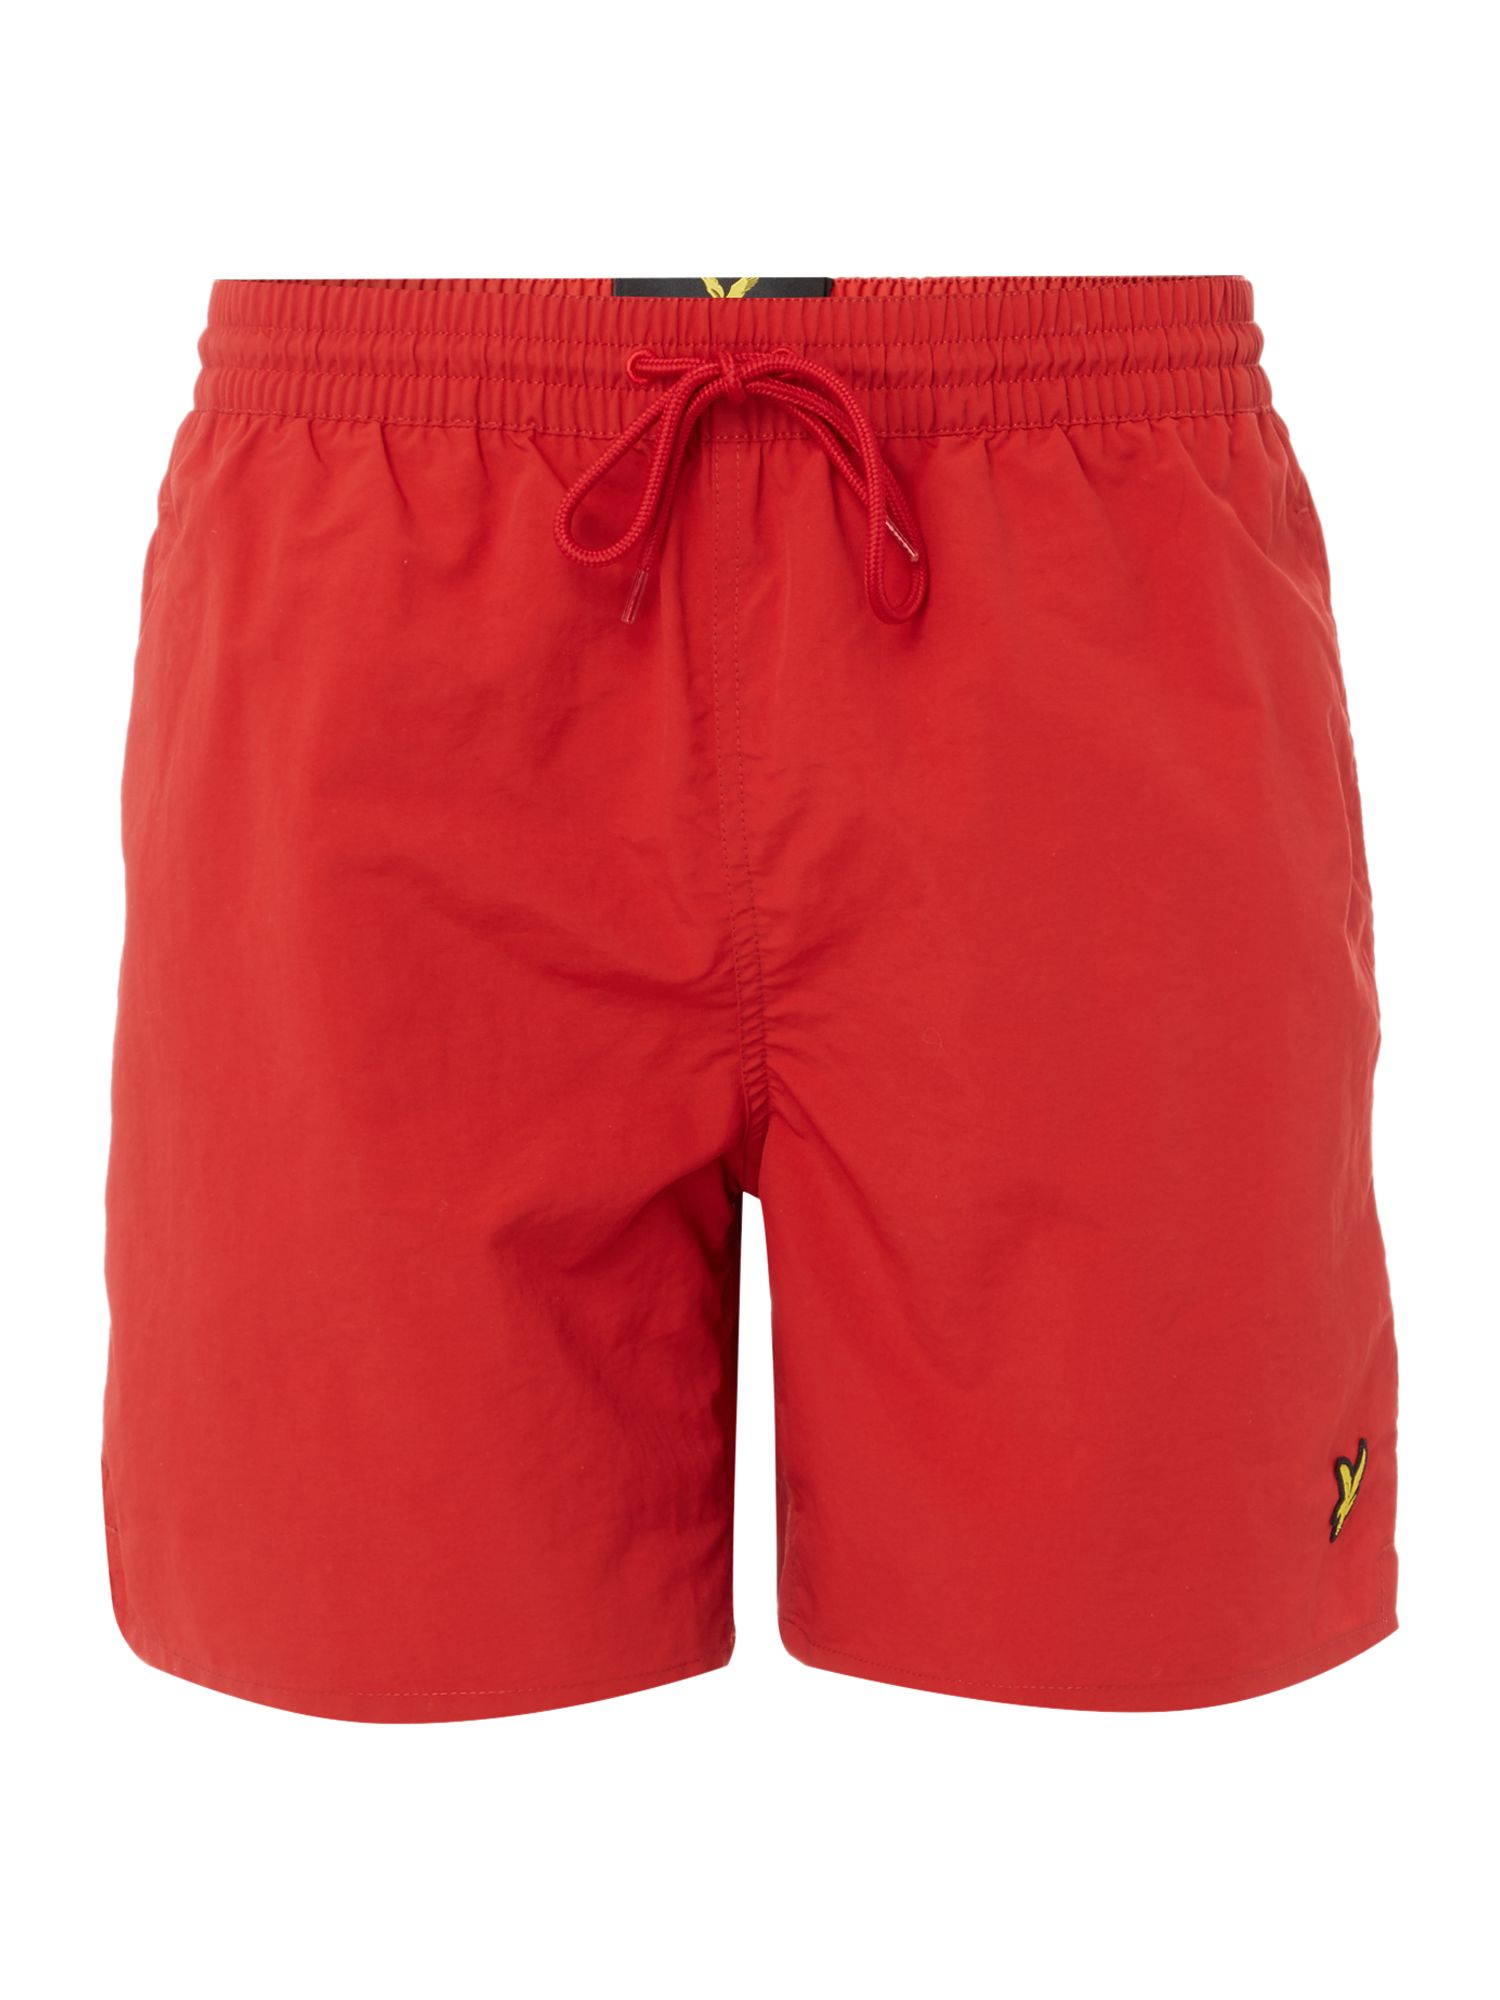 Men's Lyle and Scott Classic Plain Logo Short, Red